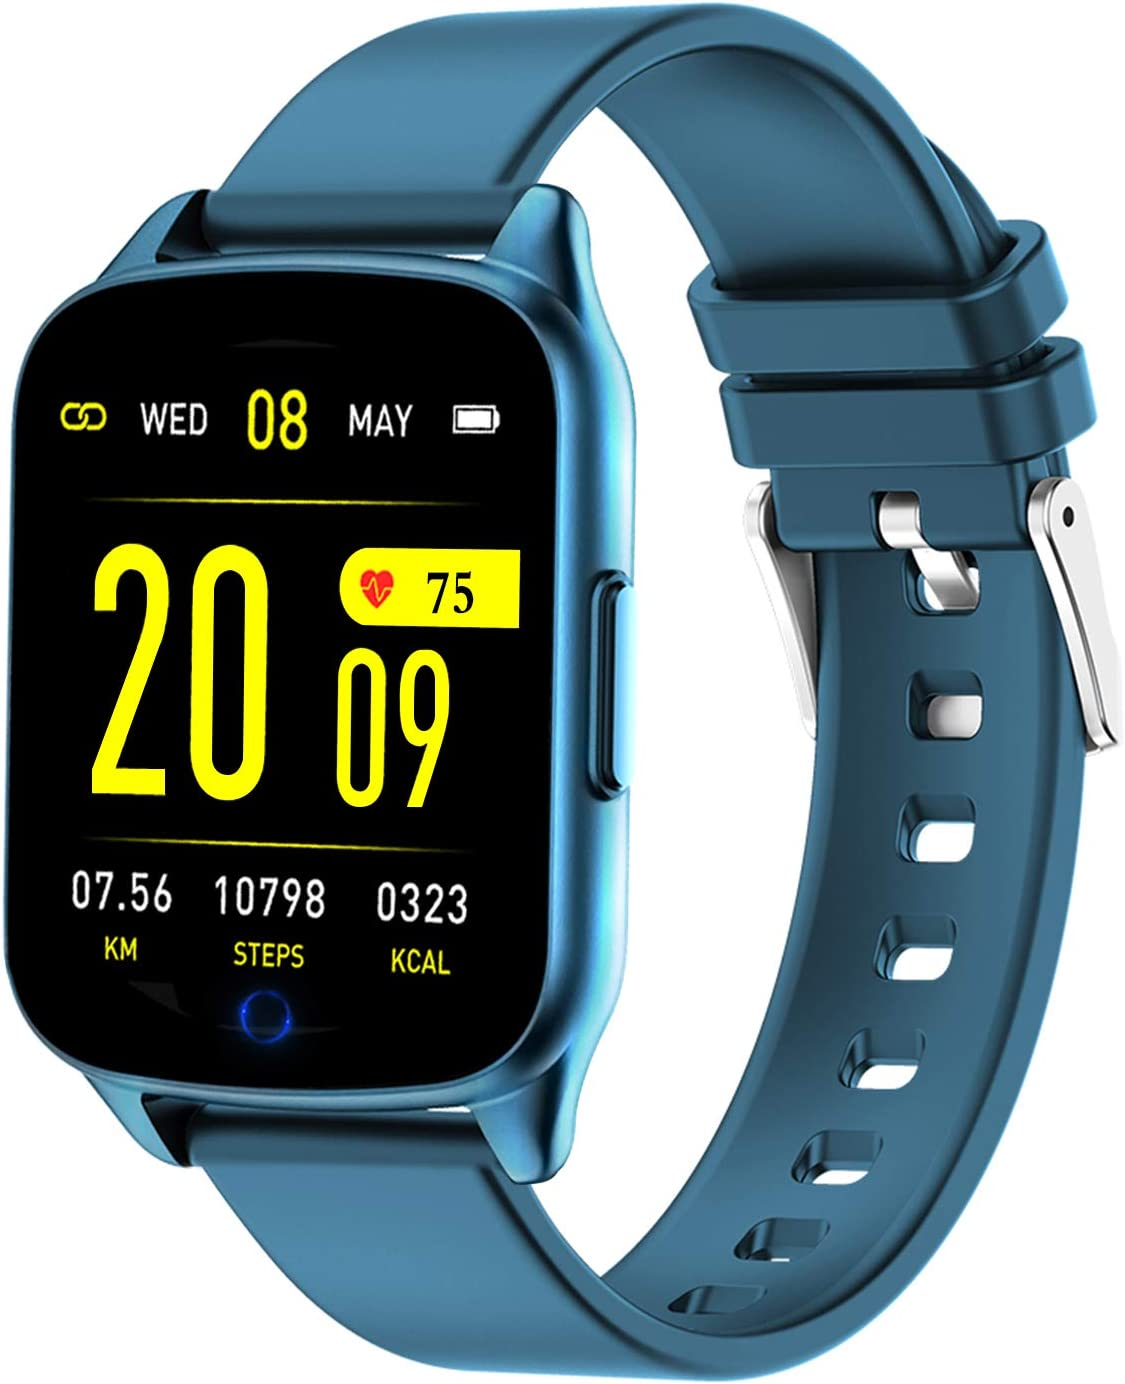 AMENON Fitness Tracker Watch for Women Men - Heart Rate Blood Pressure Oxygen Monitor Health Exercise Watch, Activity Tracker with Weather Step Calorie Counter, Waterproof Smart Fitness Watch